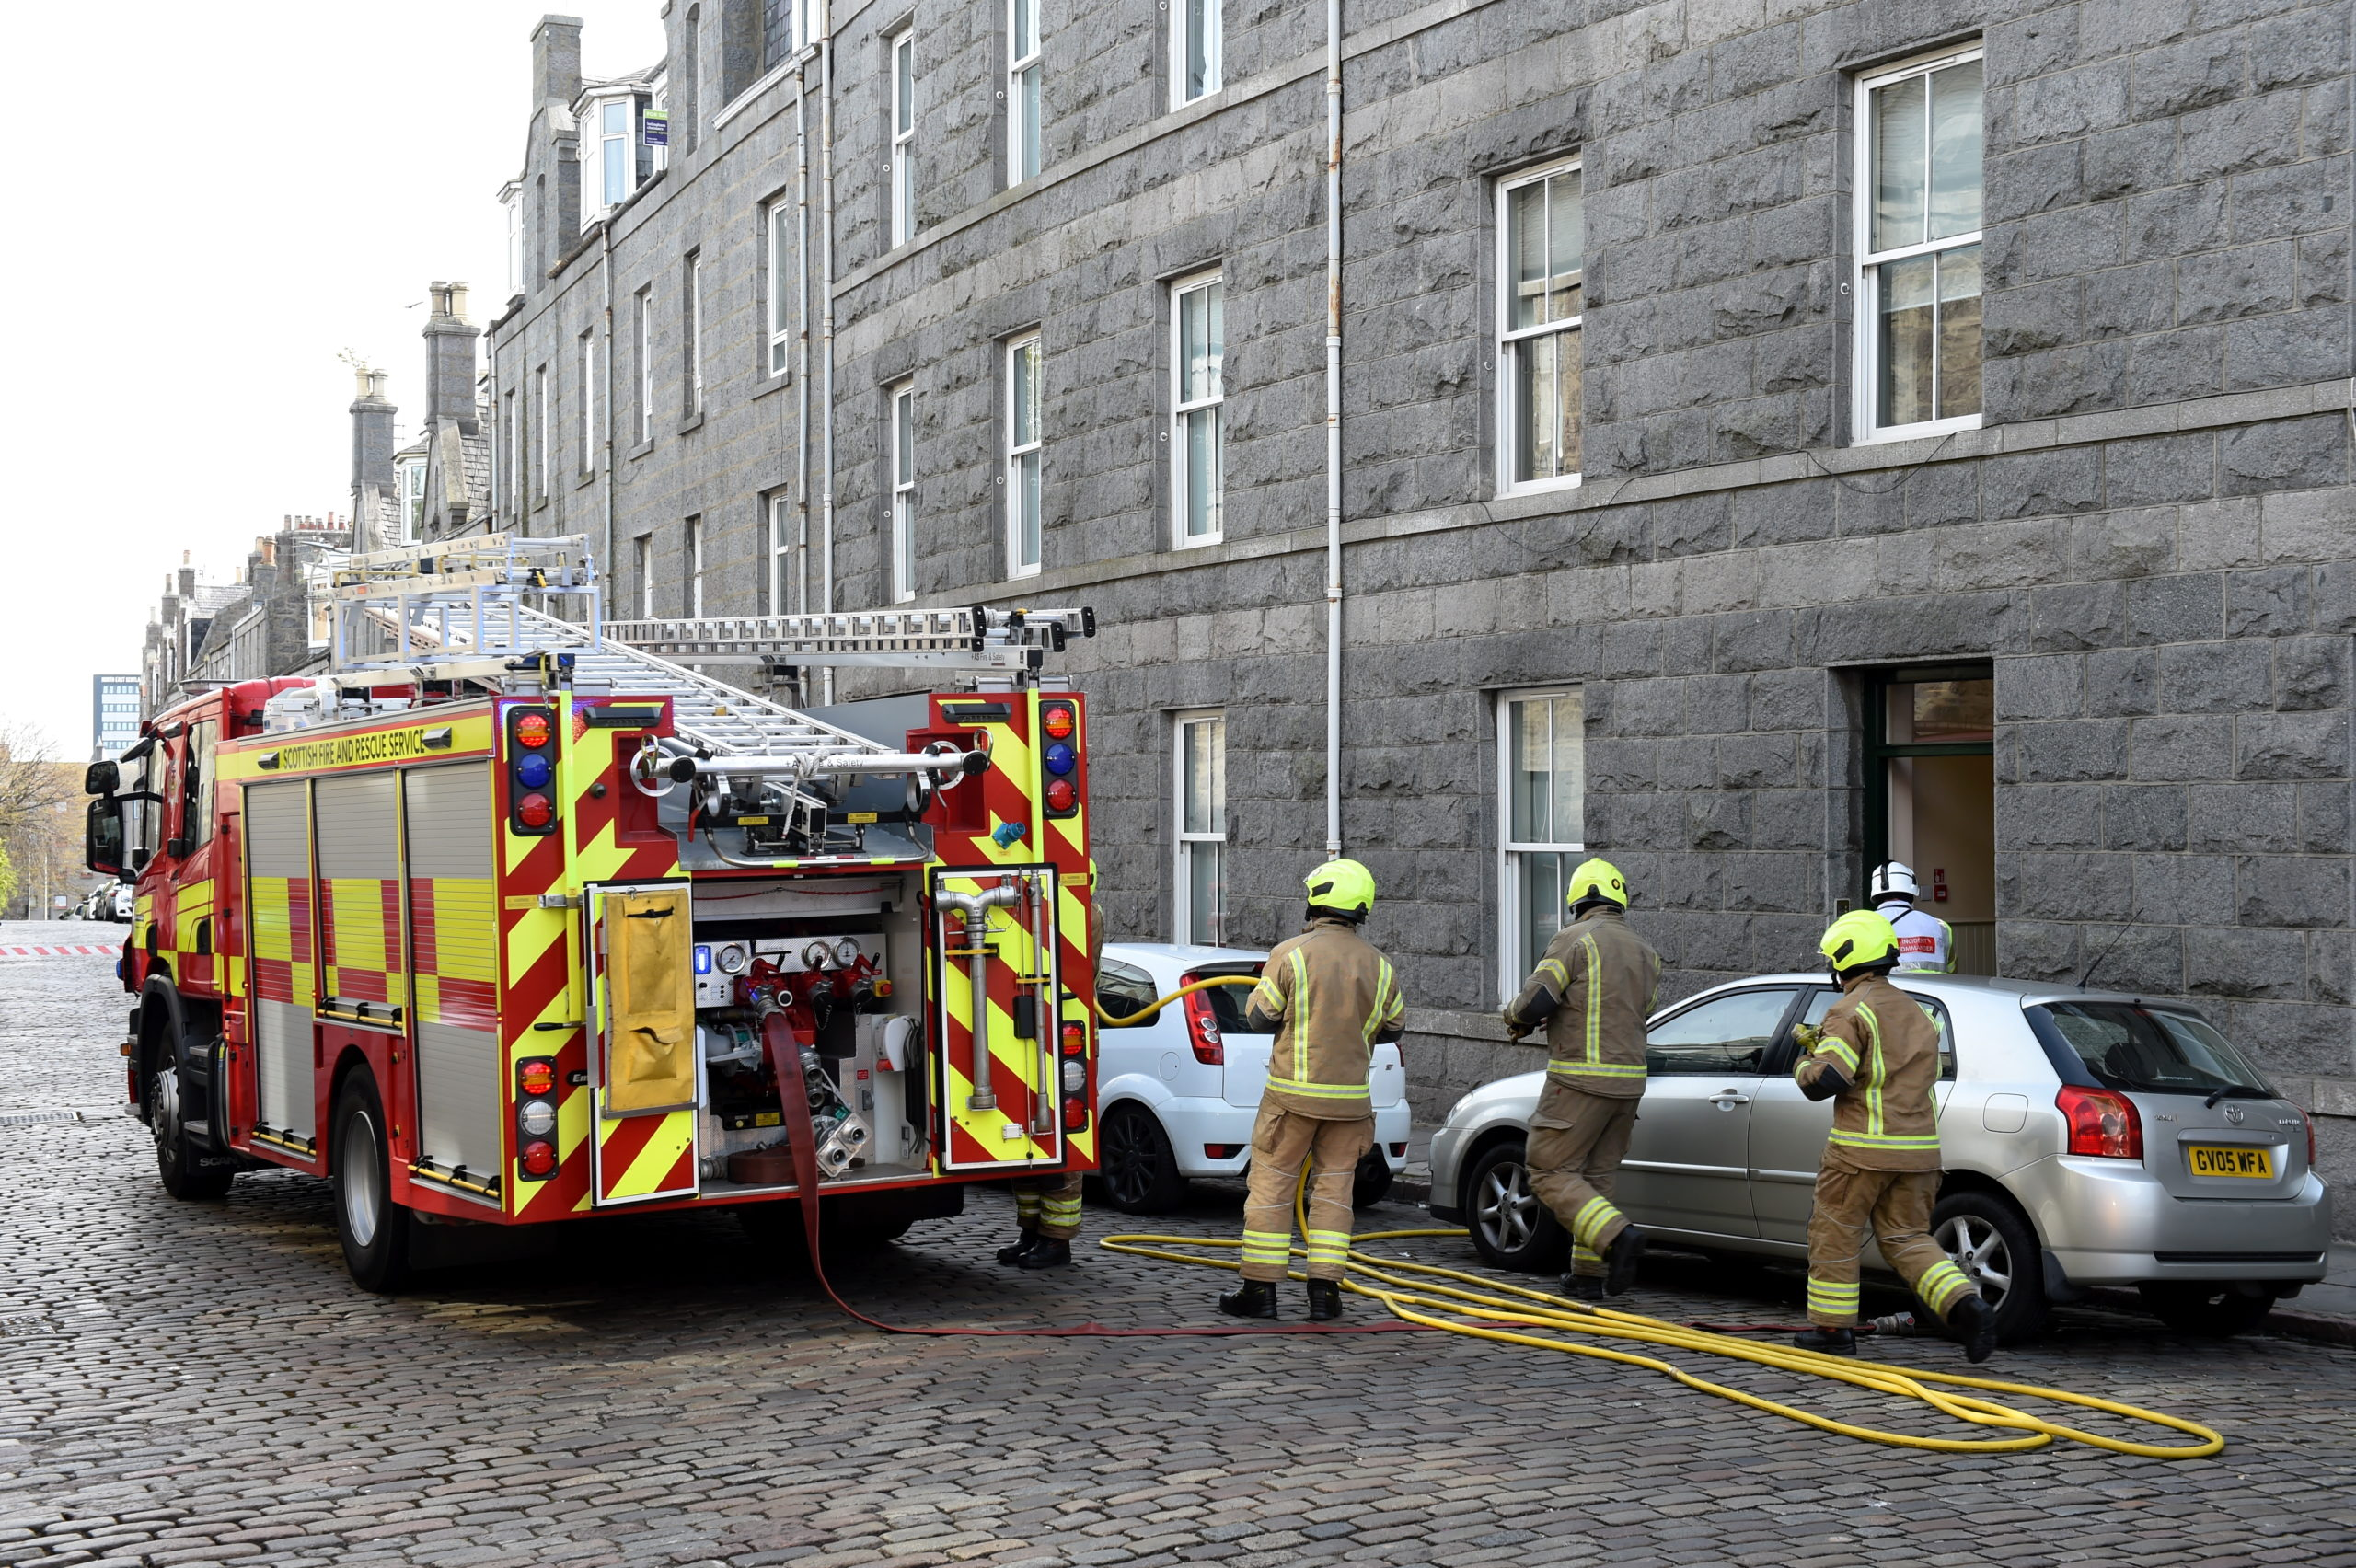 Scottish Fire and Rescue Service at the scene of a fire on Baker Street, Rosemount, Aberdeen. Picture by Kenny Elrick